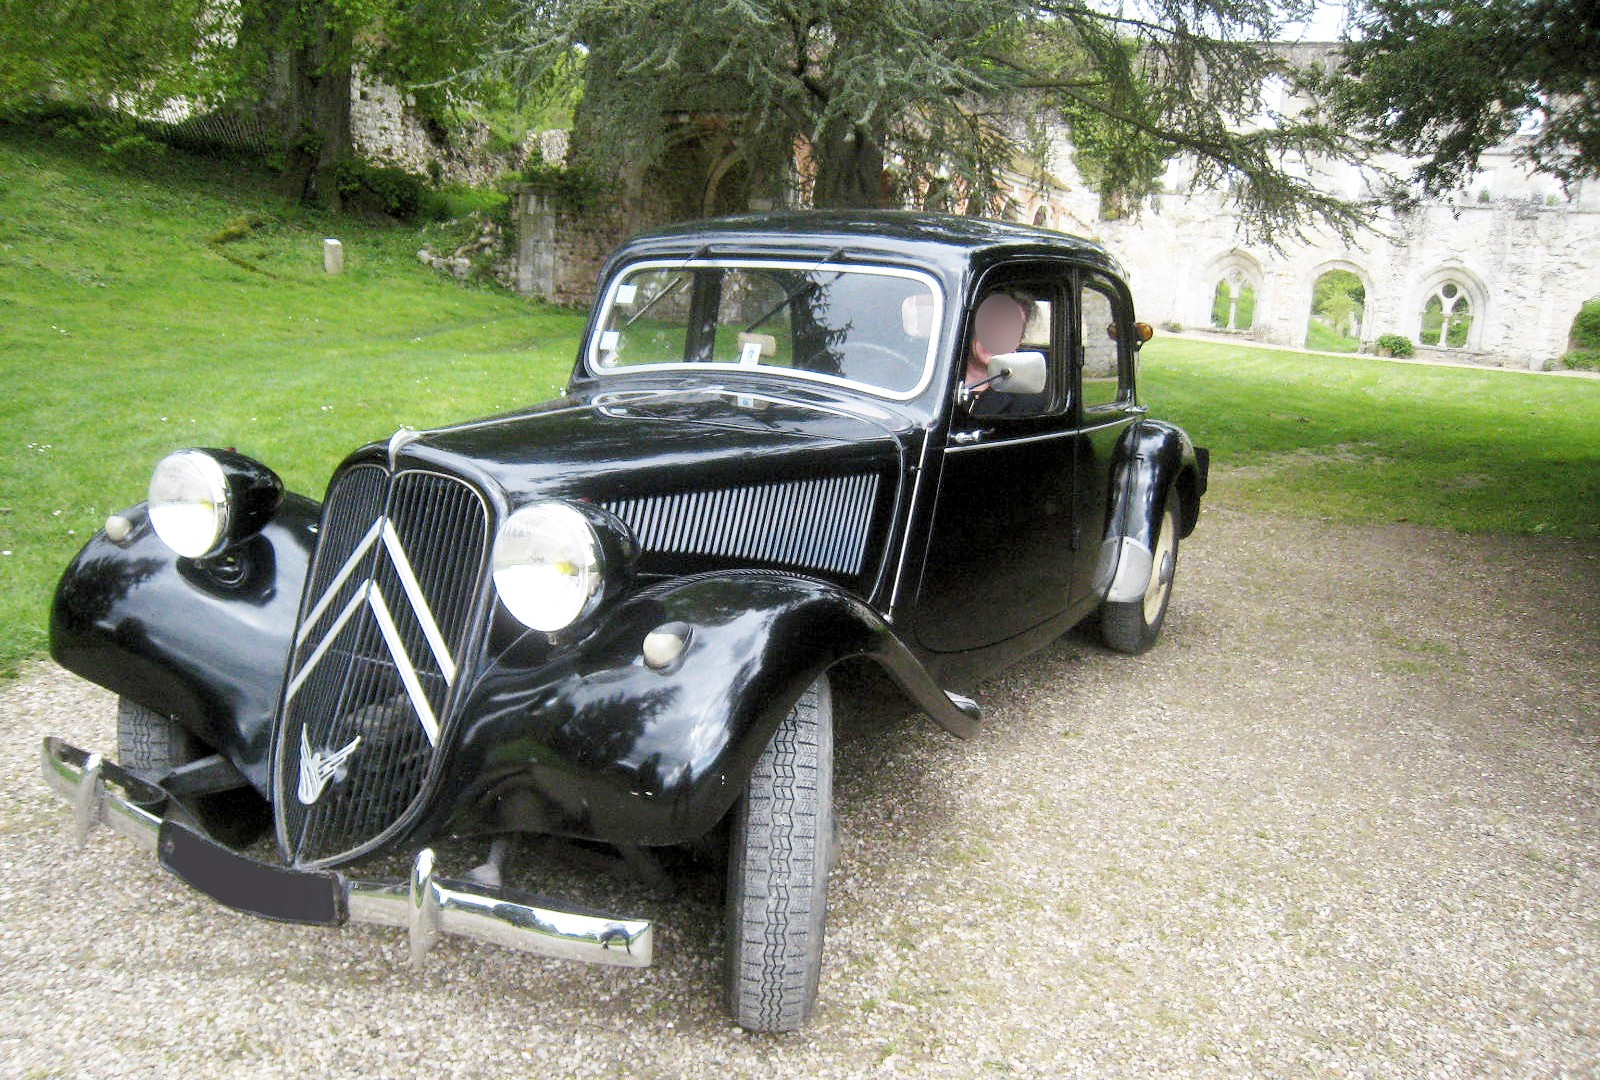 1950 Citroën Traction 11BL